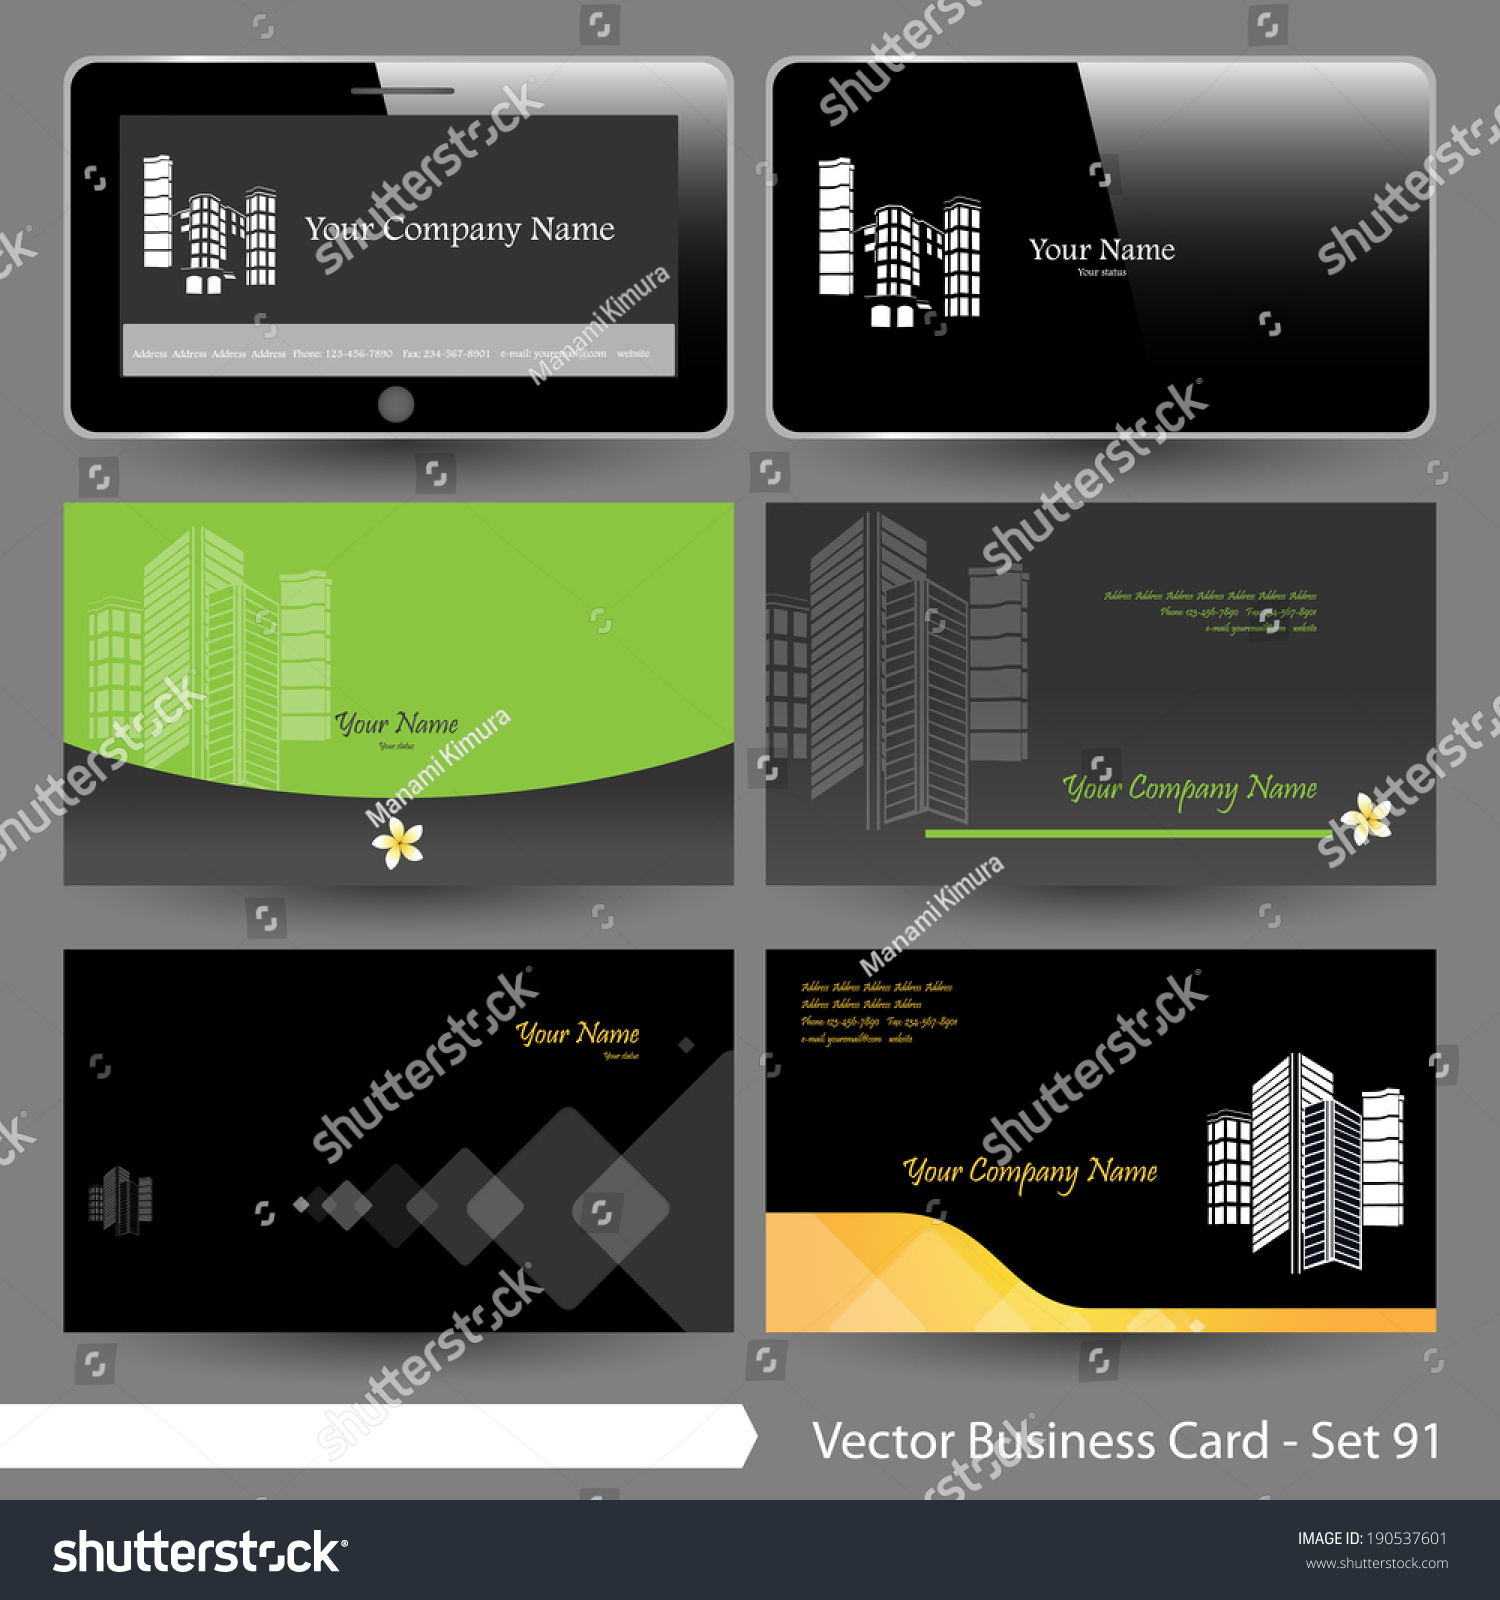 Vector Business Card Template Set Real Stock Vector 190537601 ...